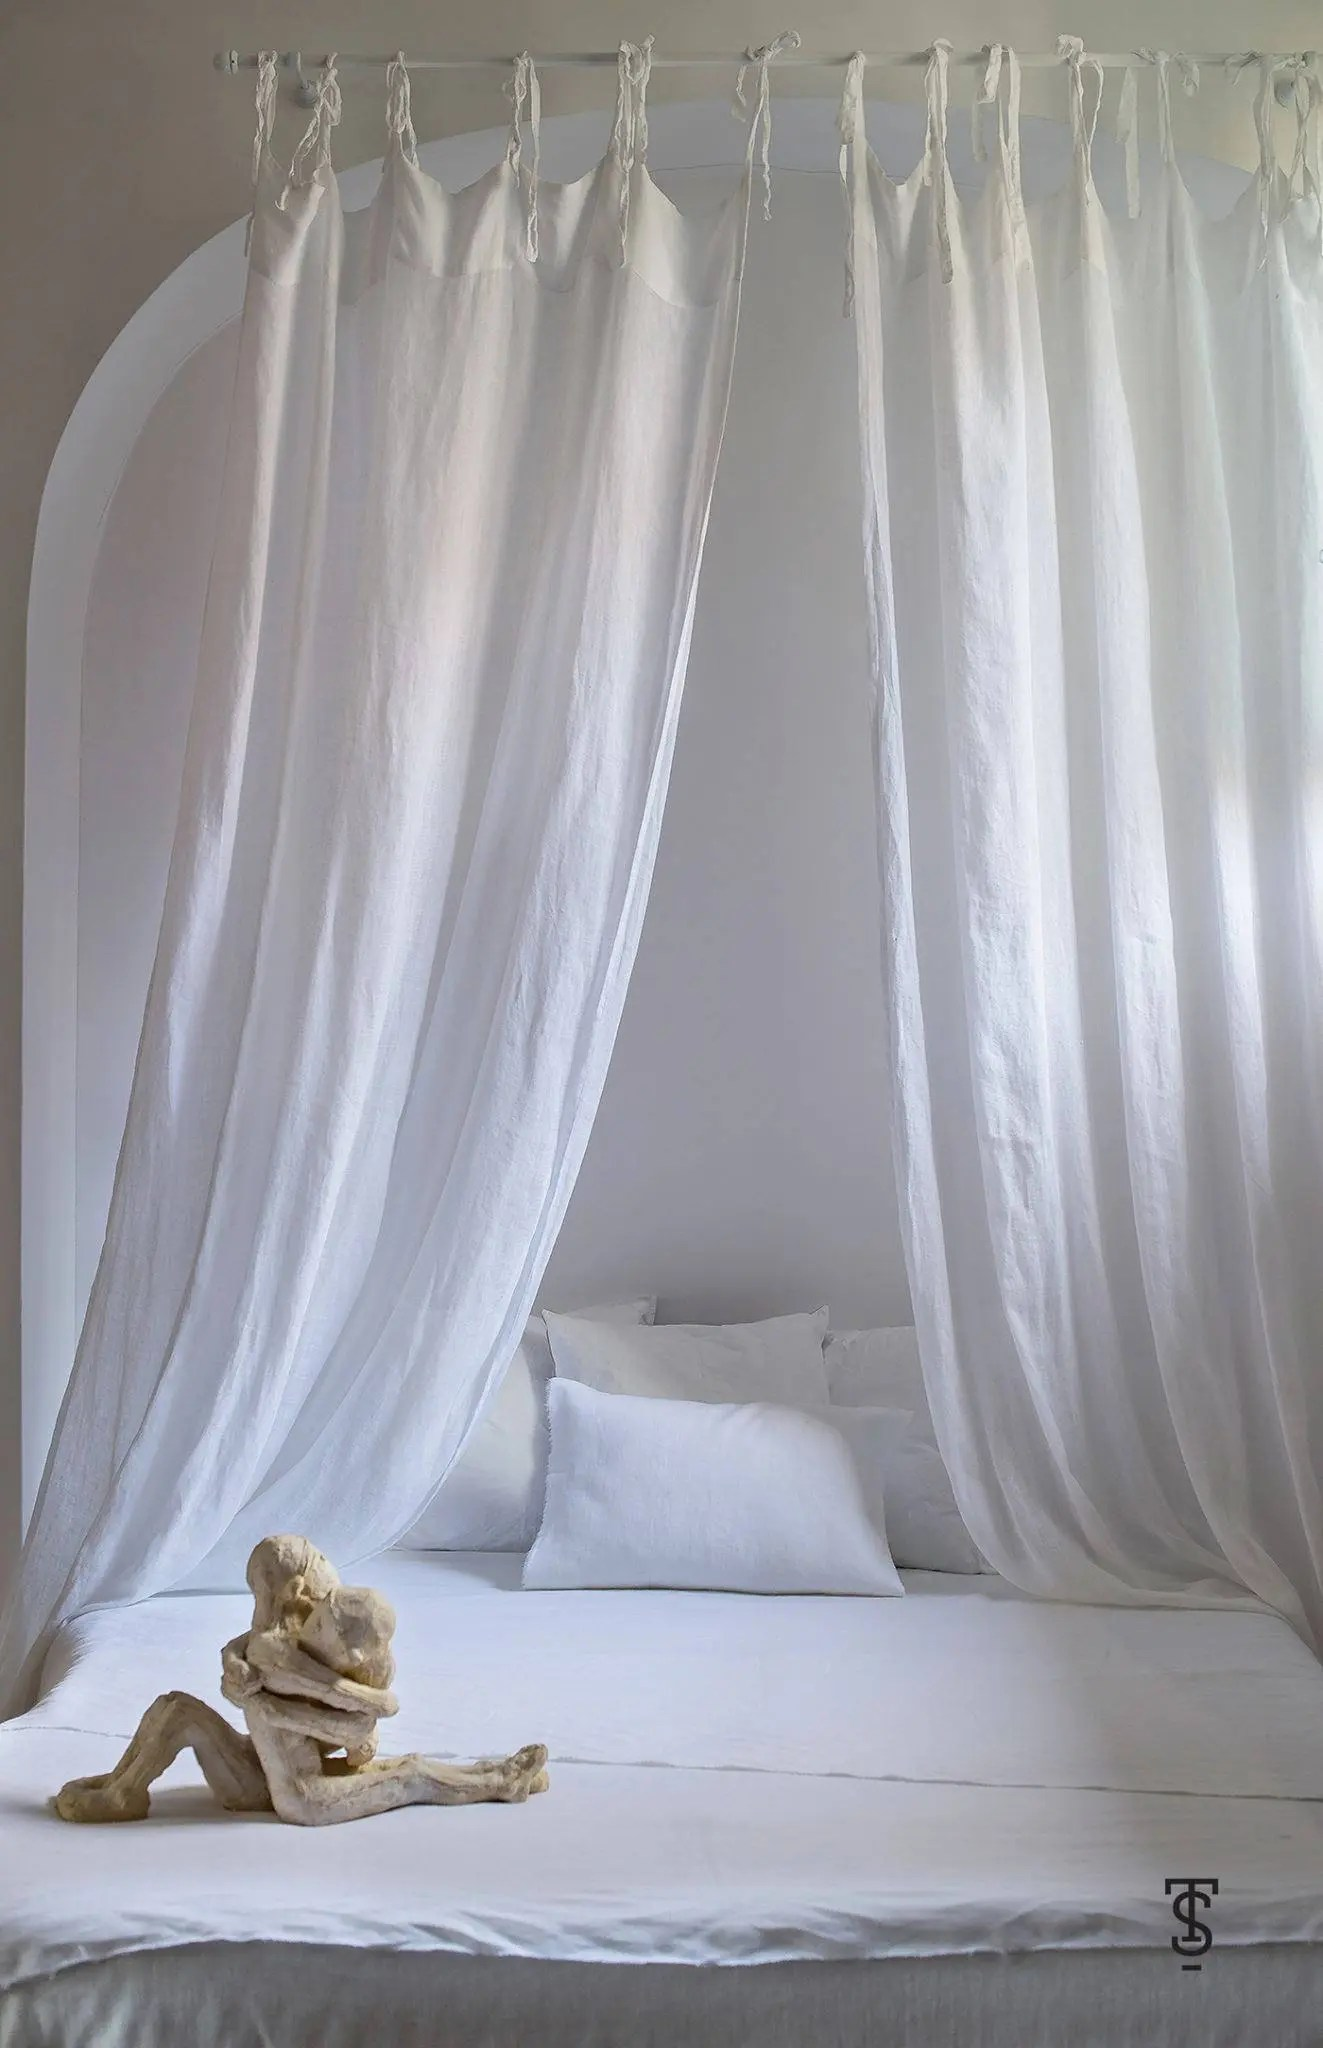 white bed canopy linen bed canopy canopy bed curtains bed canopies sheer bed canopy girls bed canopy linen curtains sheer linen panel